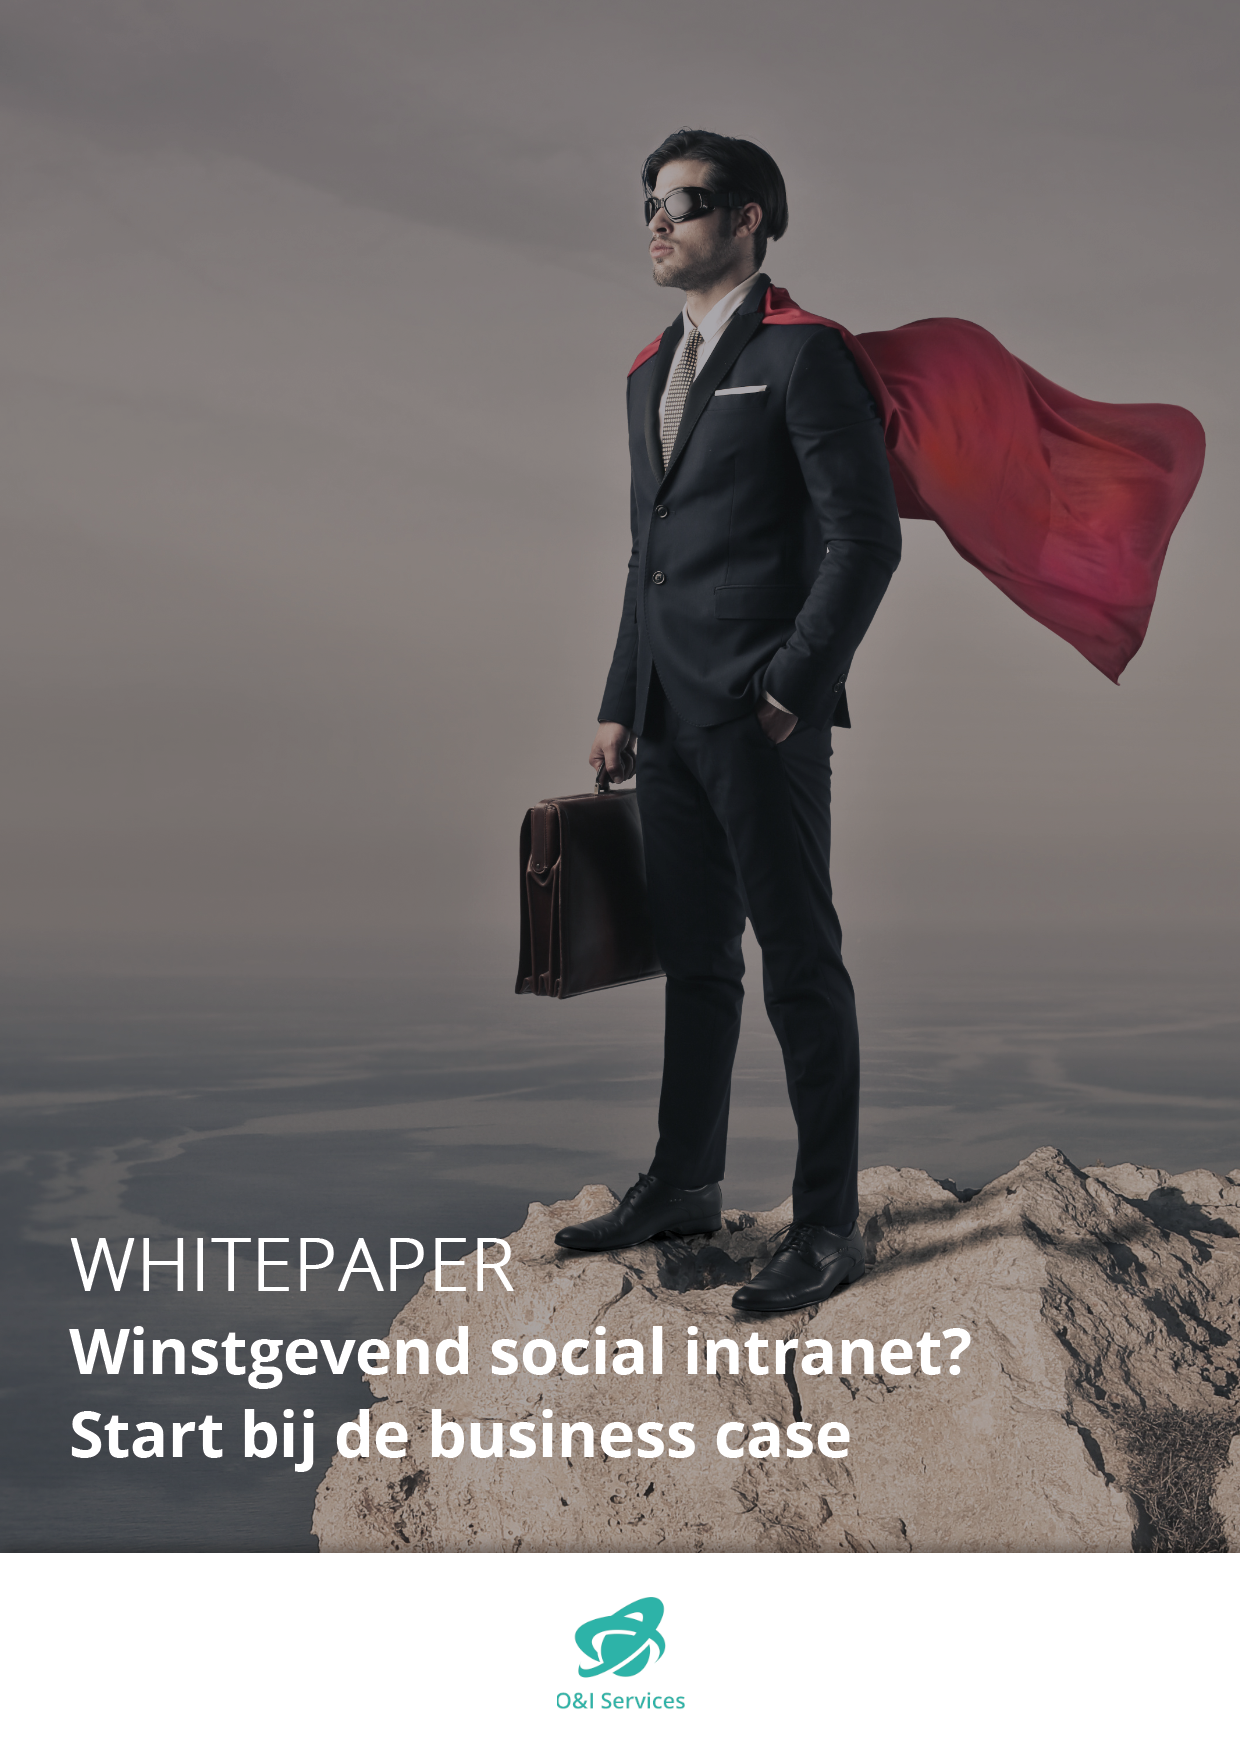 Winstgevend social intranet? Start bij de business case!